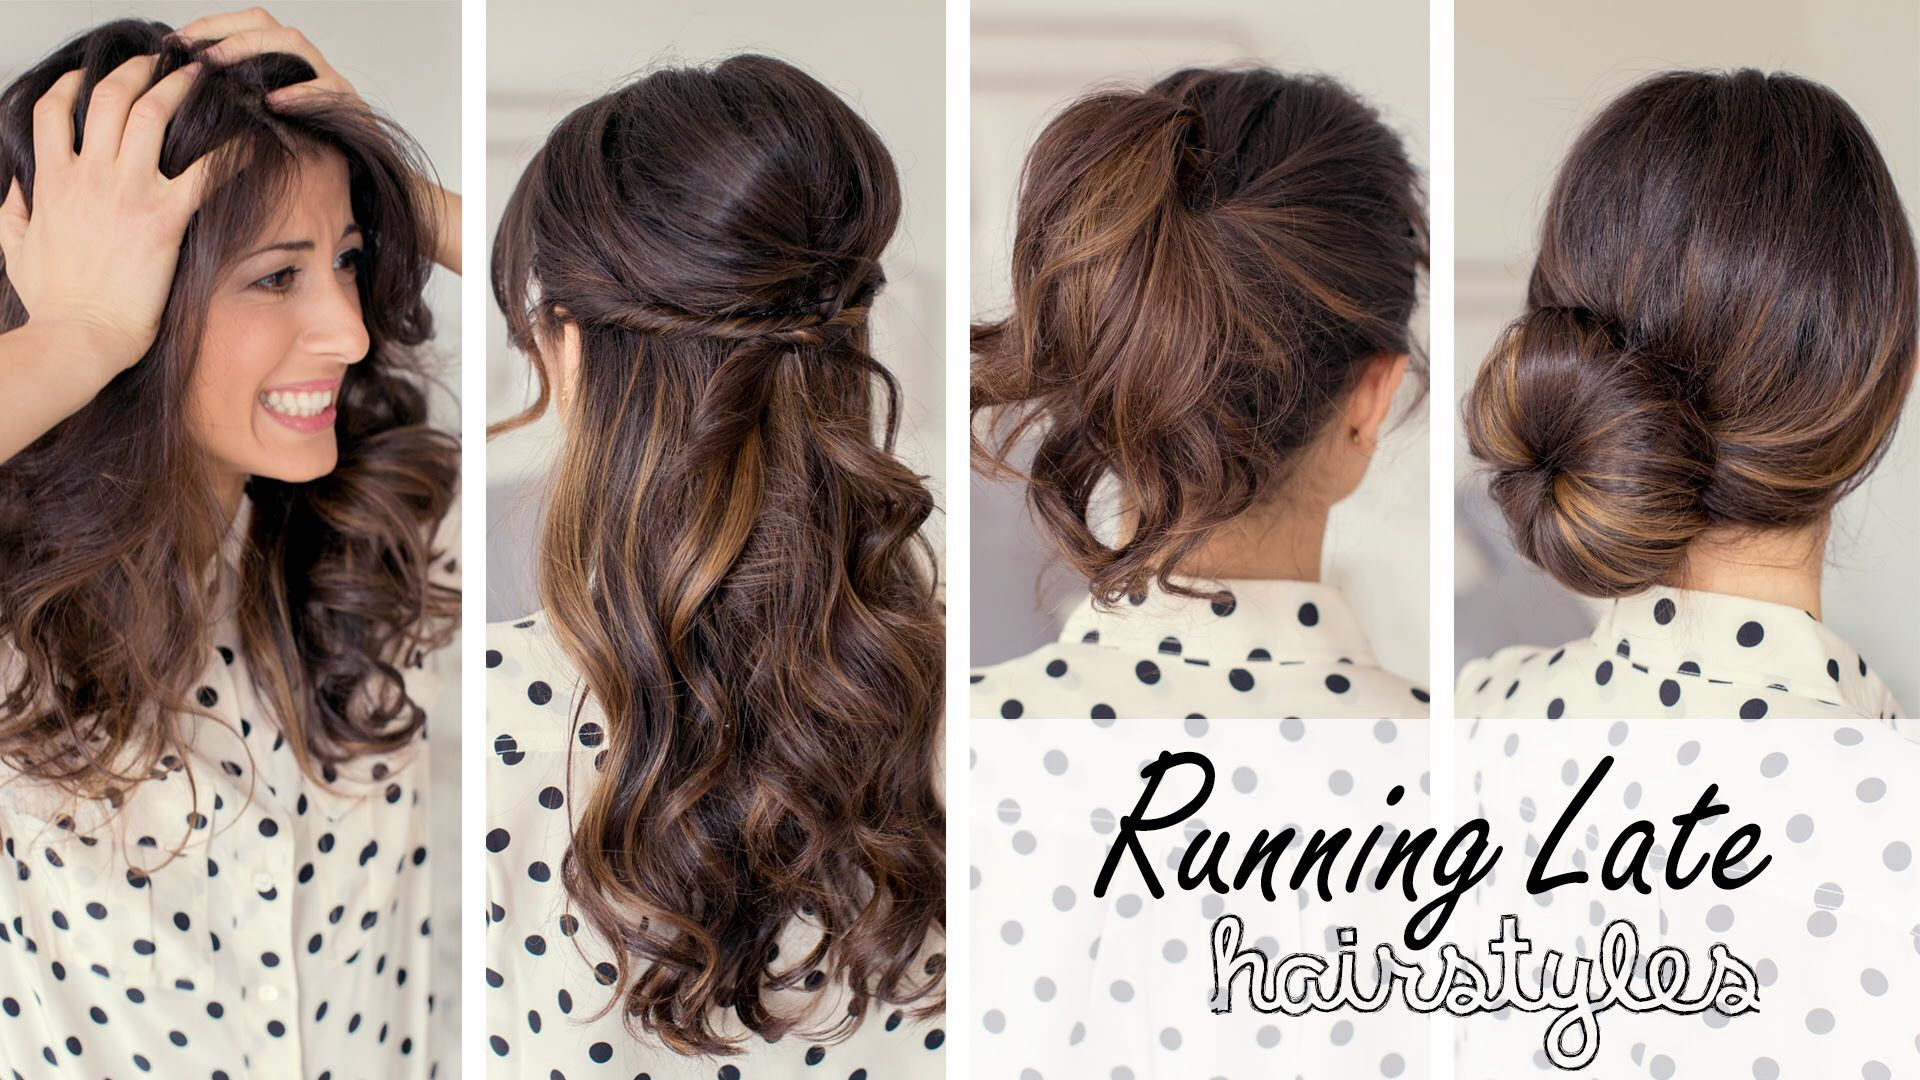 If your running late for school or work these hairstyles are so